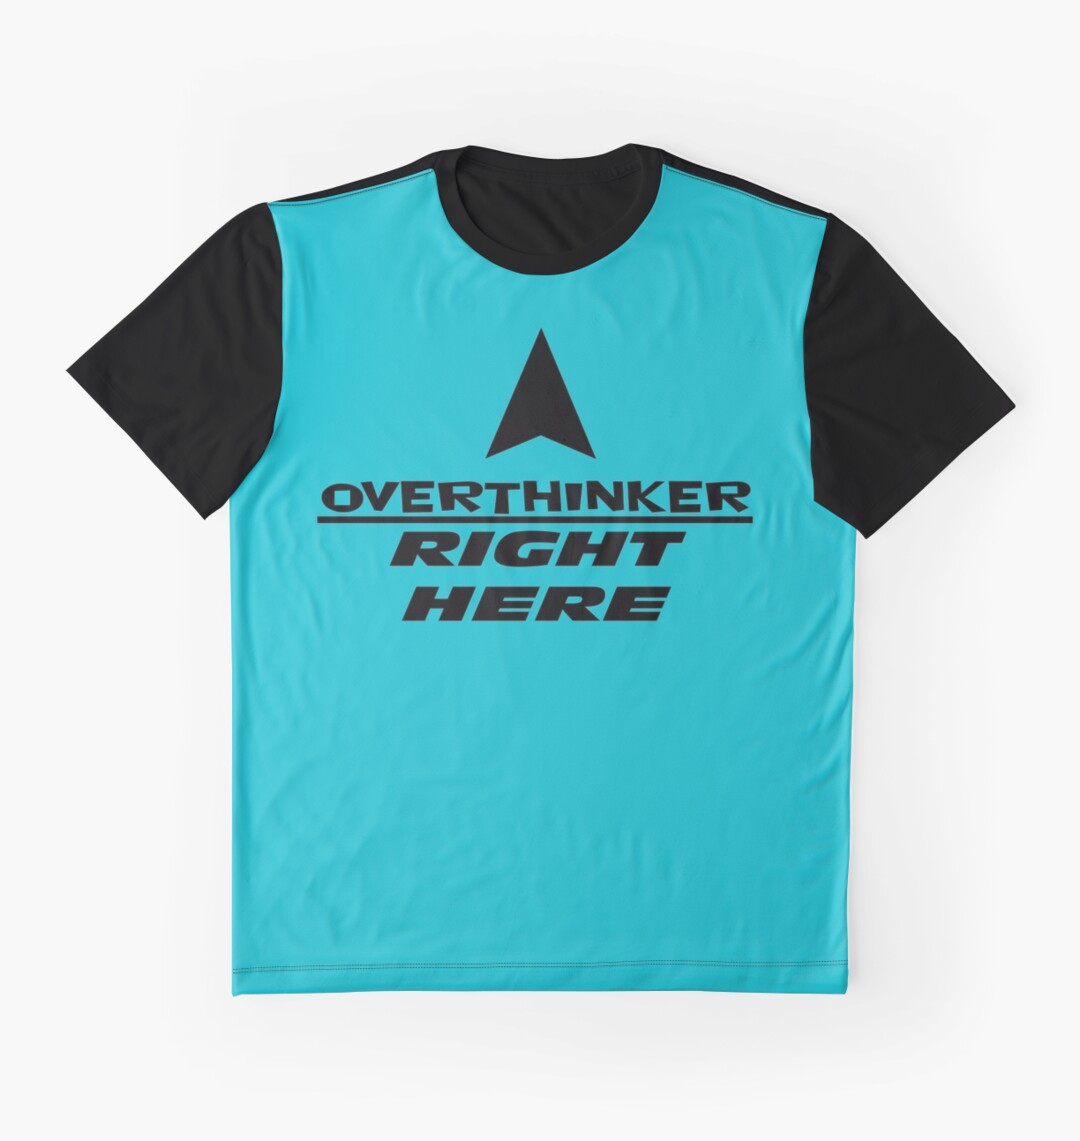 Black t shirt quotes - Overthinker Right Here Pisces Quotes Graphic T Shirts